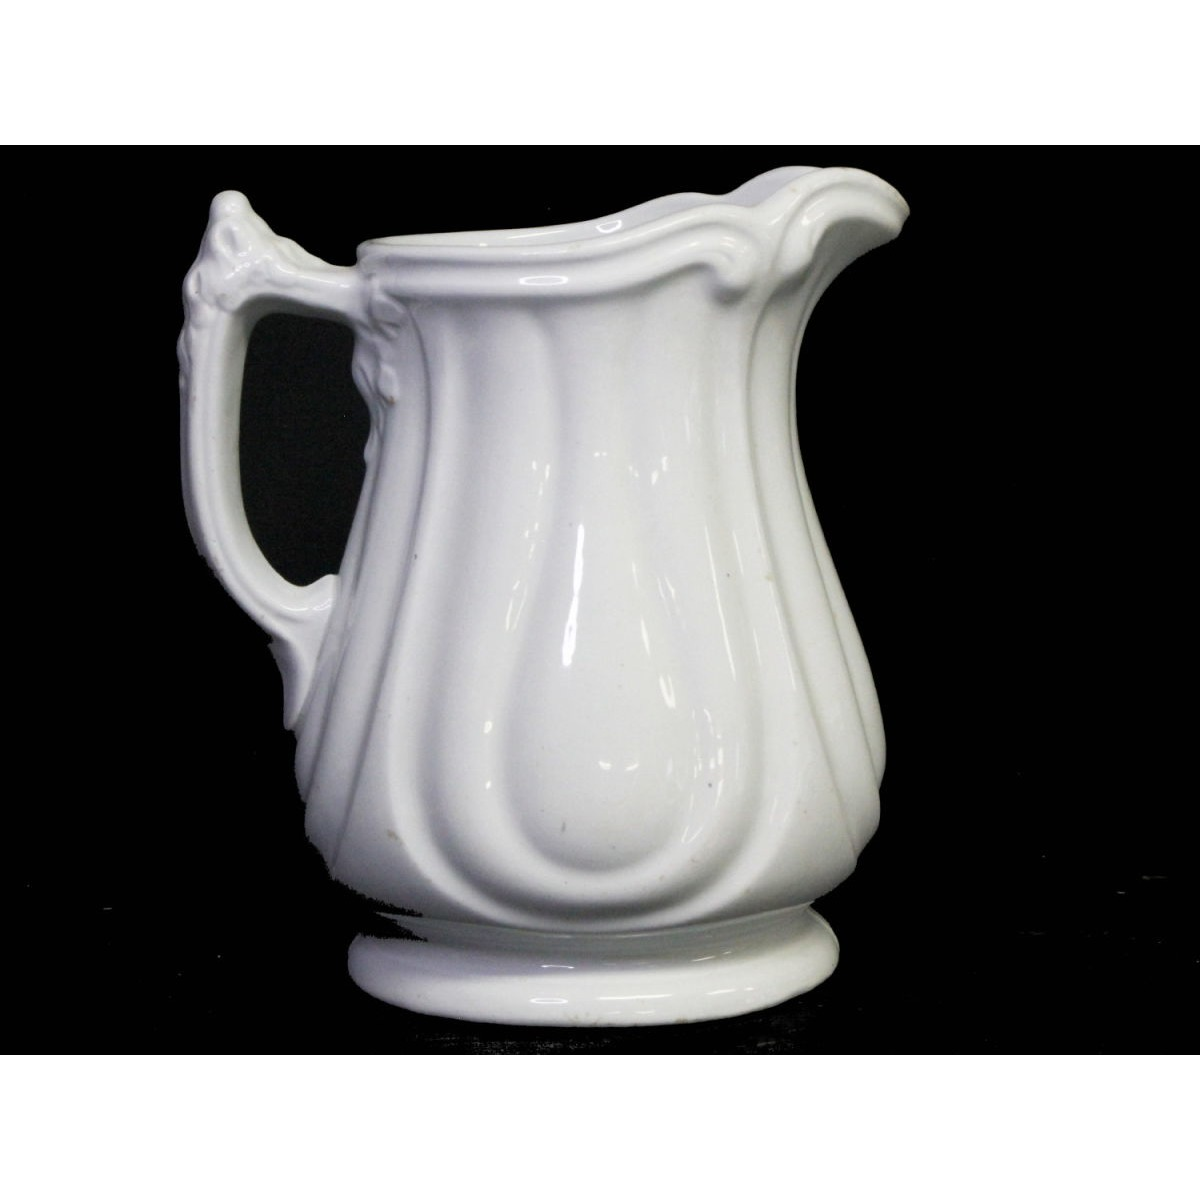 Fabulous Grand Loop & Line Ironstone Pitcher - Jacob Furnival